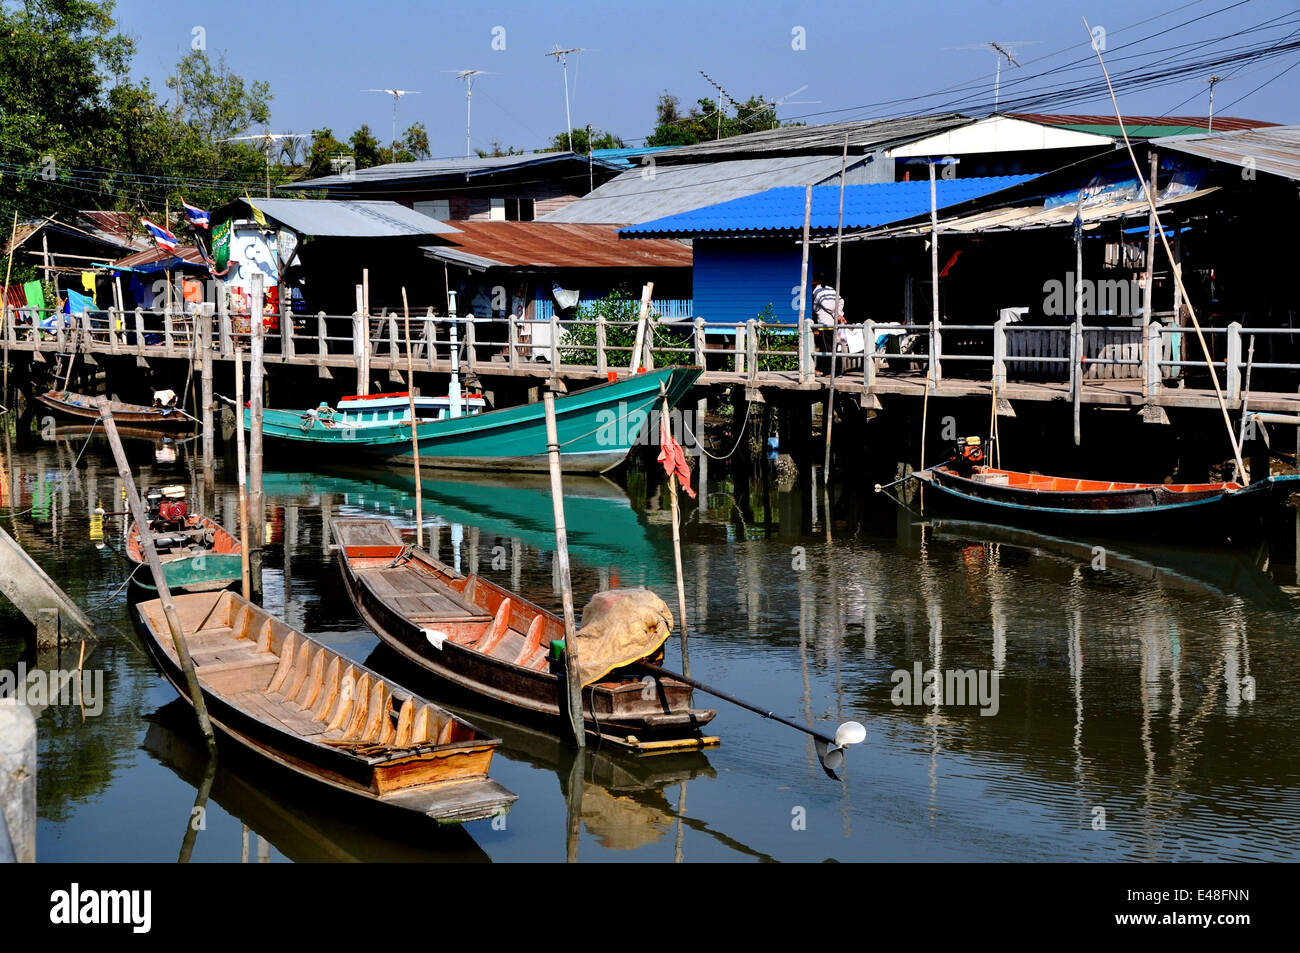 SAMUT SONGKHRAM, THAILAND: Old wooden fishing boats moored to walkways - Stock Image